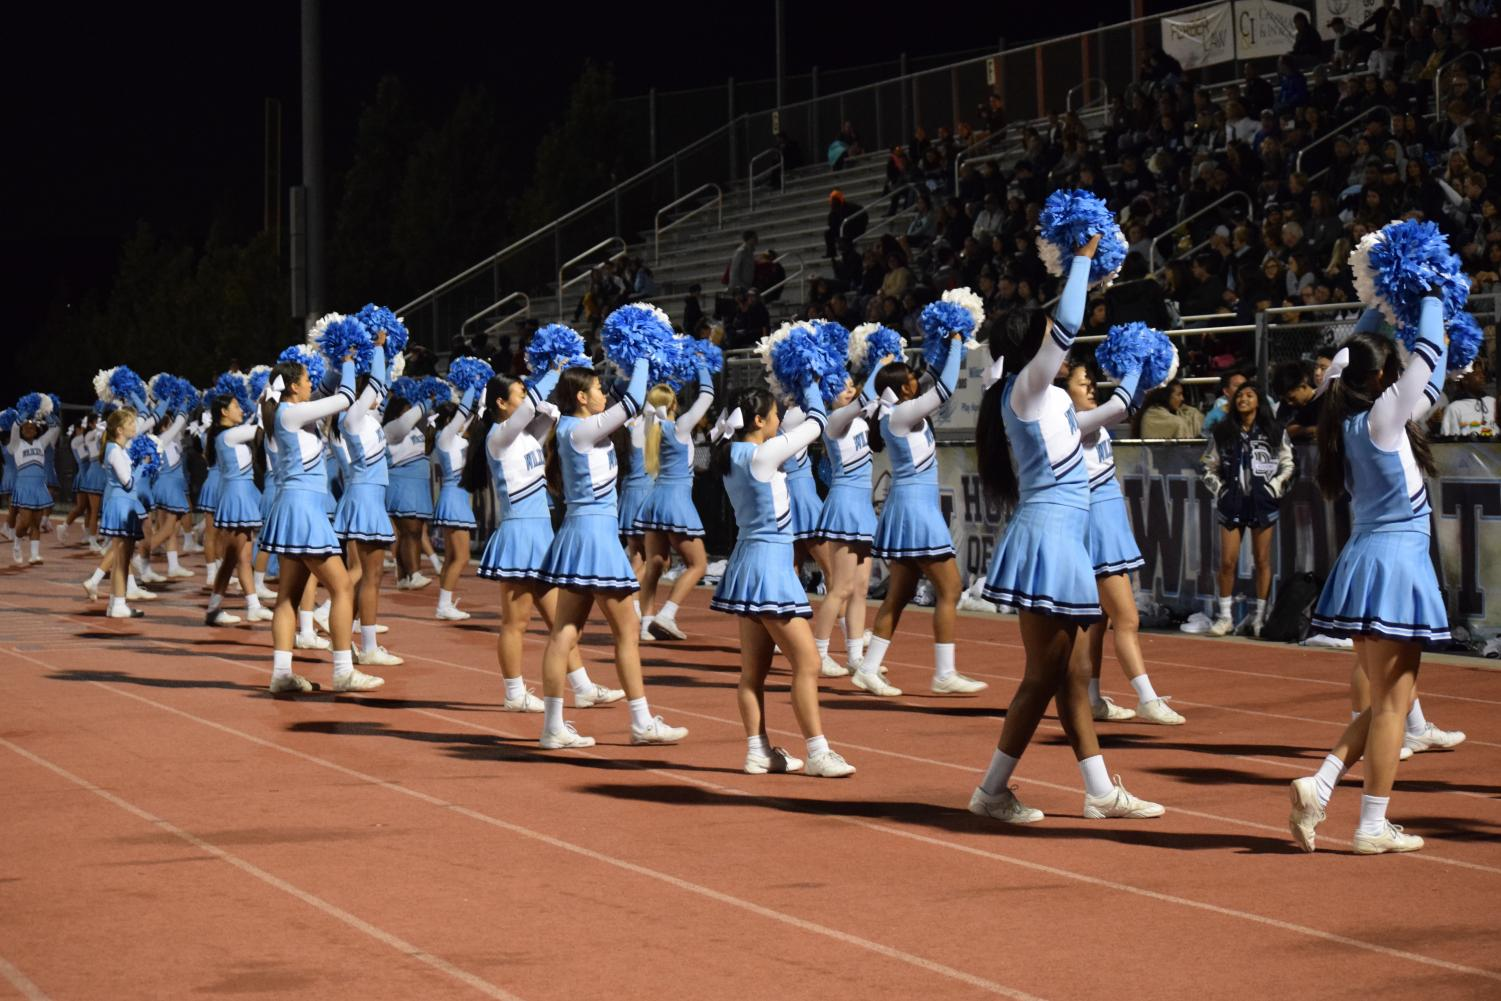 Cheer peforms half time show at Livermore game